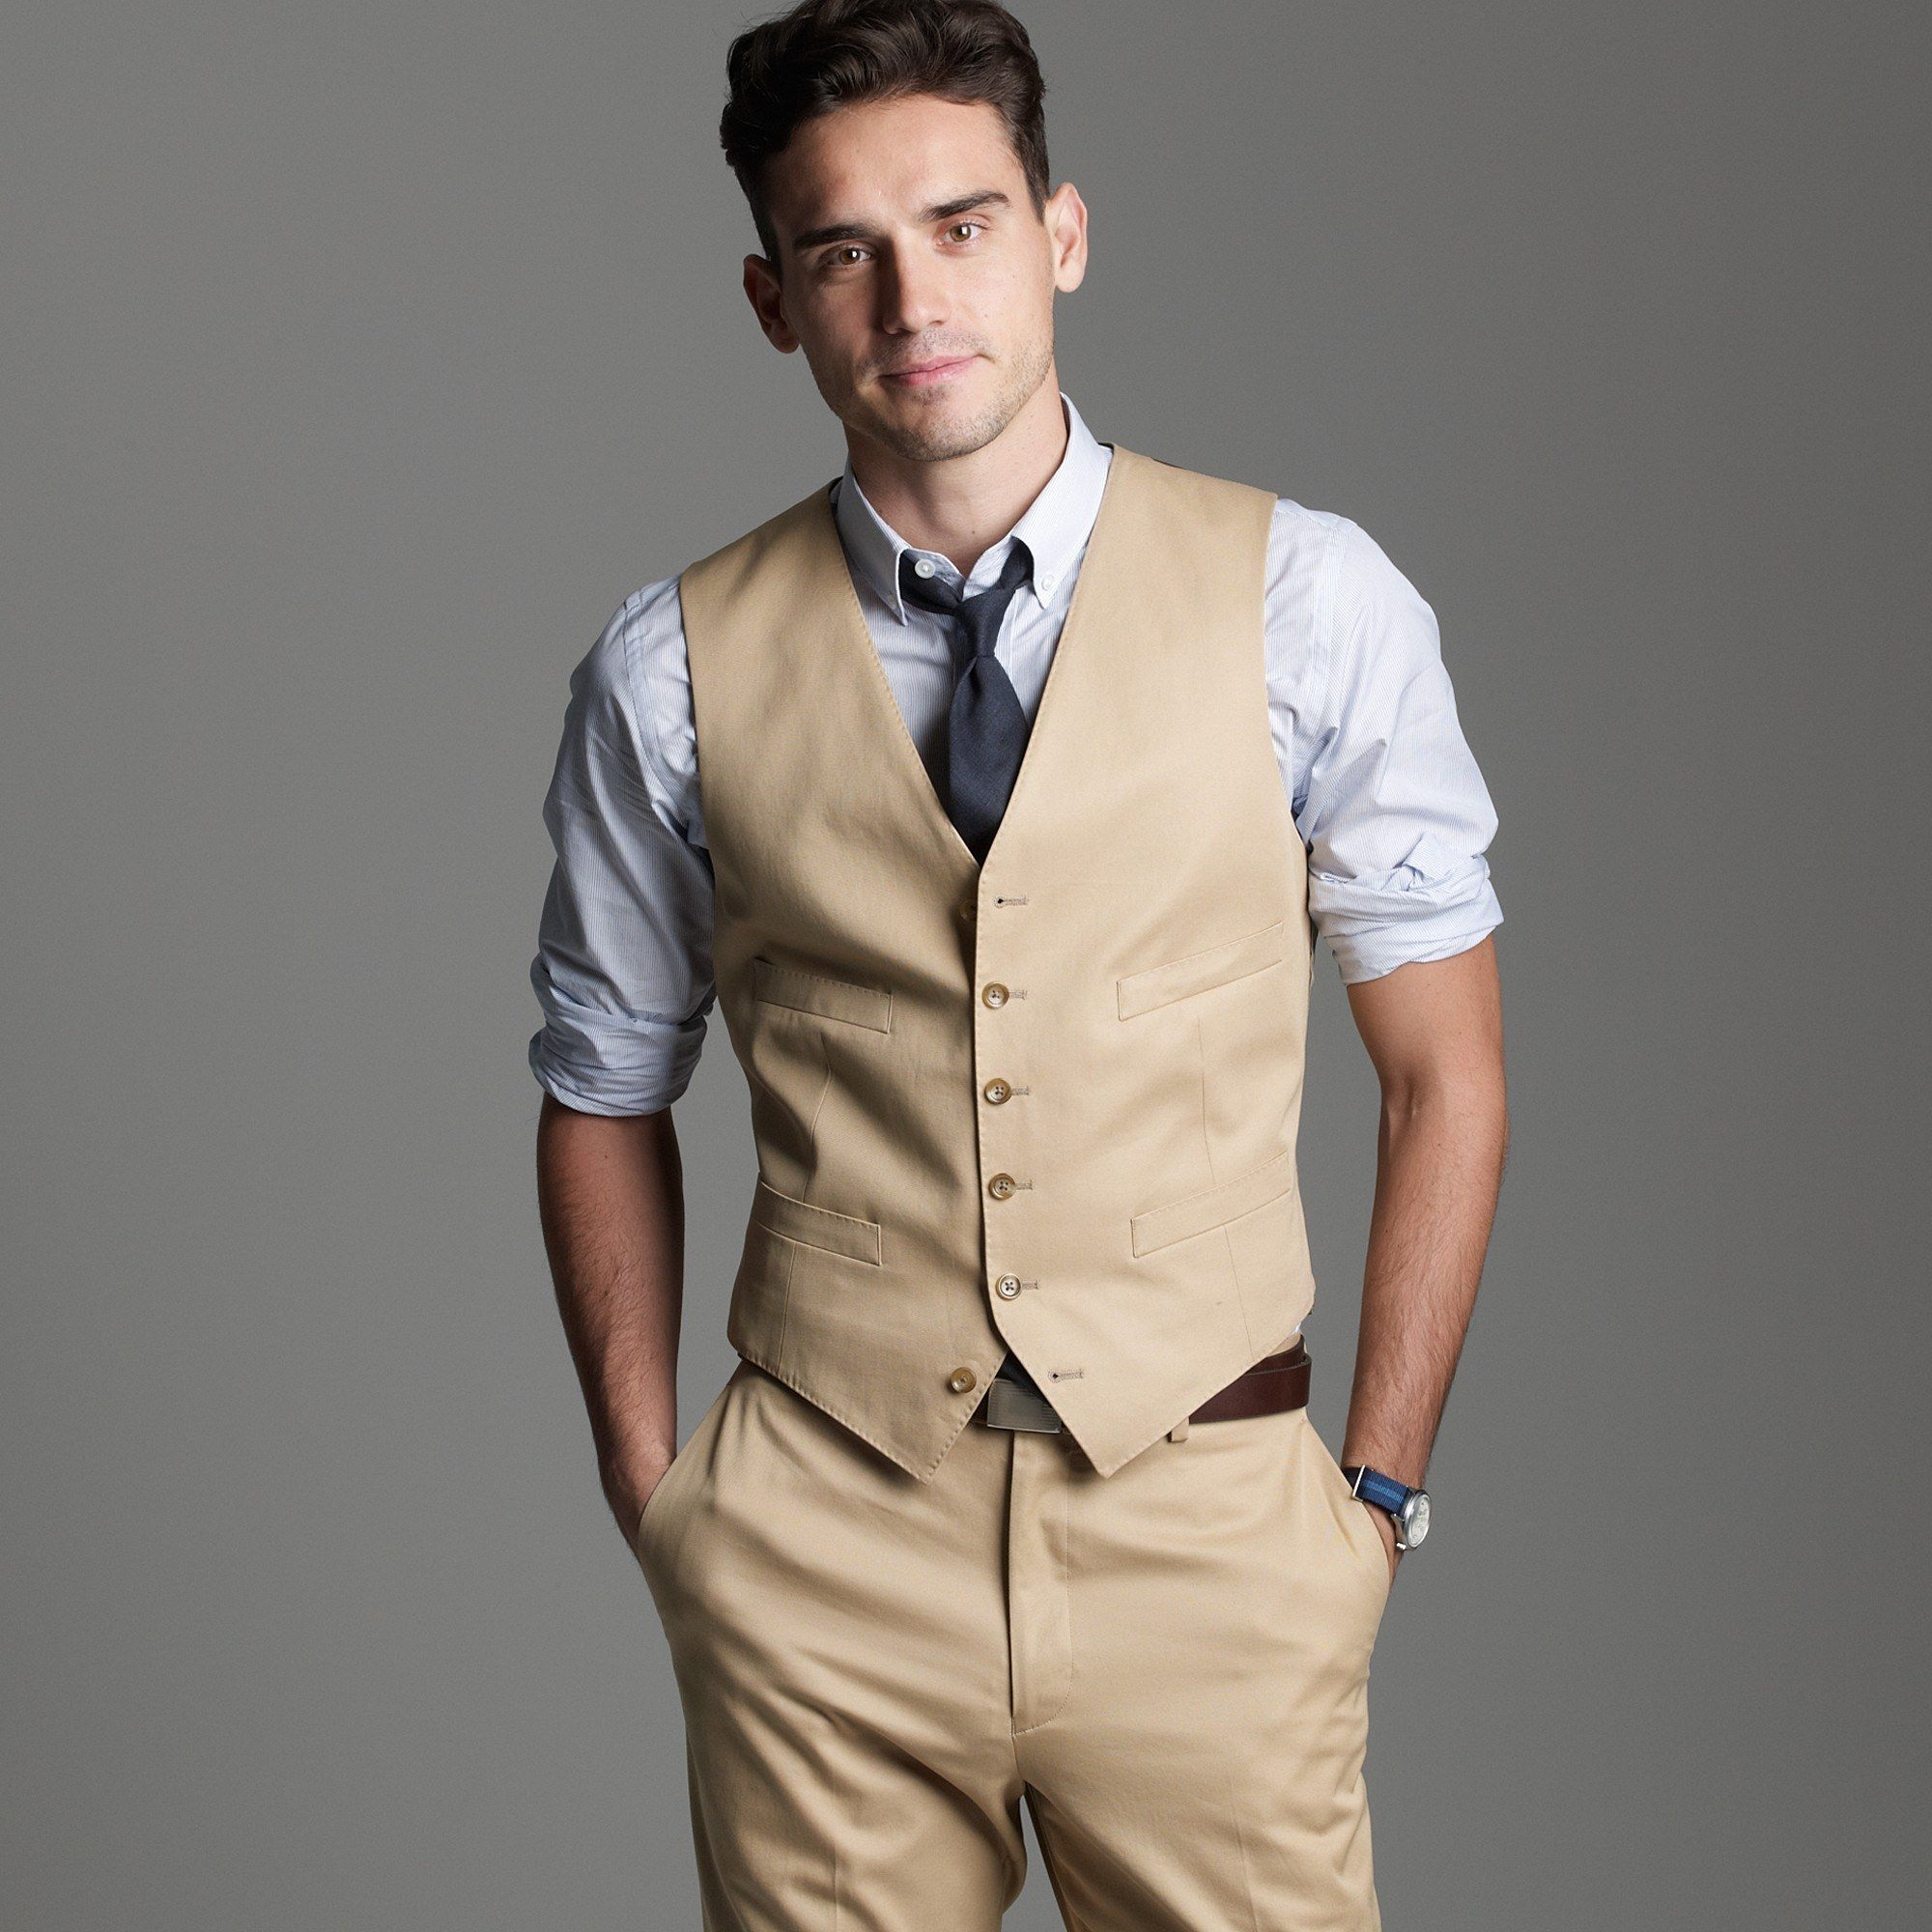 c1e1c210b79d Semi-Formal Outfits For Guys-18 Best Semi Formal Attire Ideas